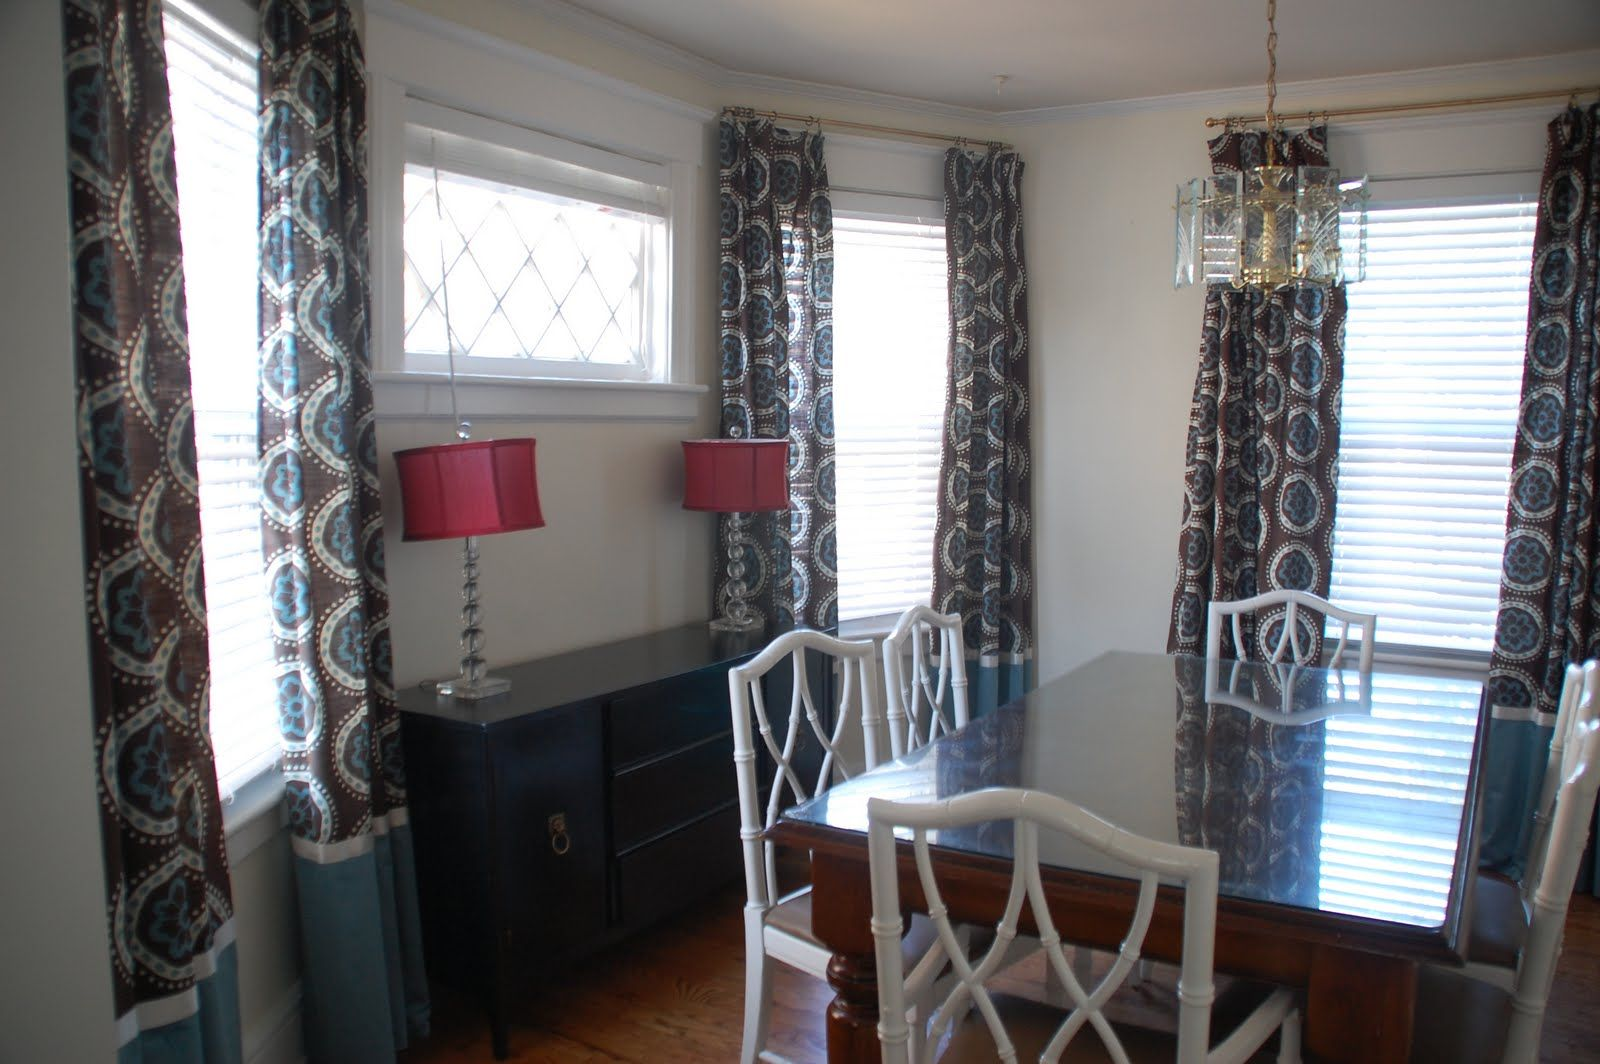 Dining room window coverings  small dining room curtain ideas  apartment  pinterest  dining